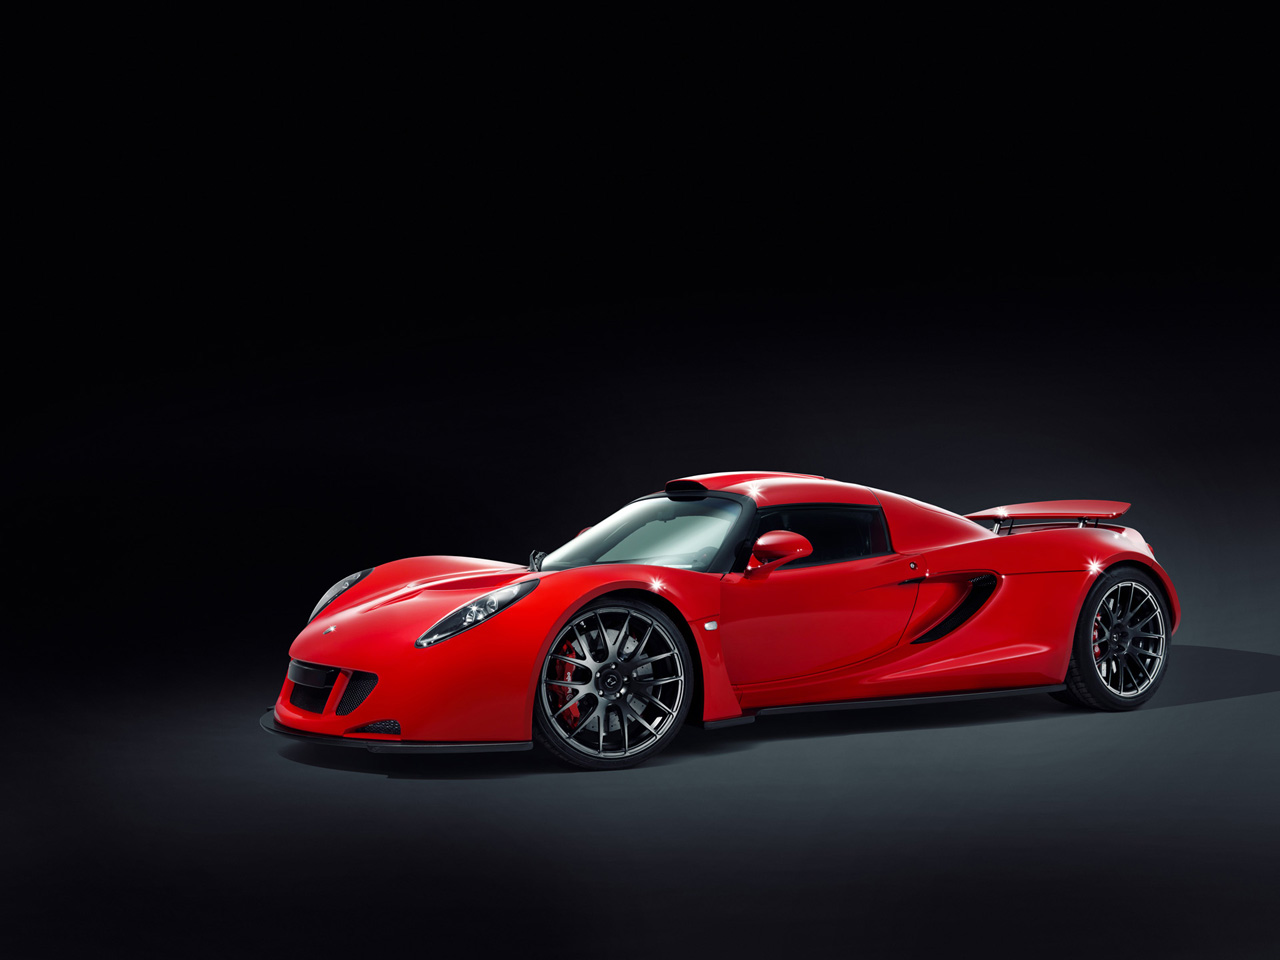 2011 Hennessey Venom Gt Hits The Studio For Some Red Hot